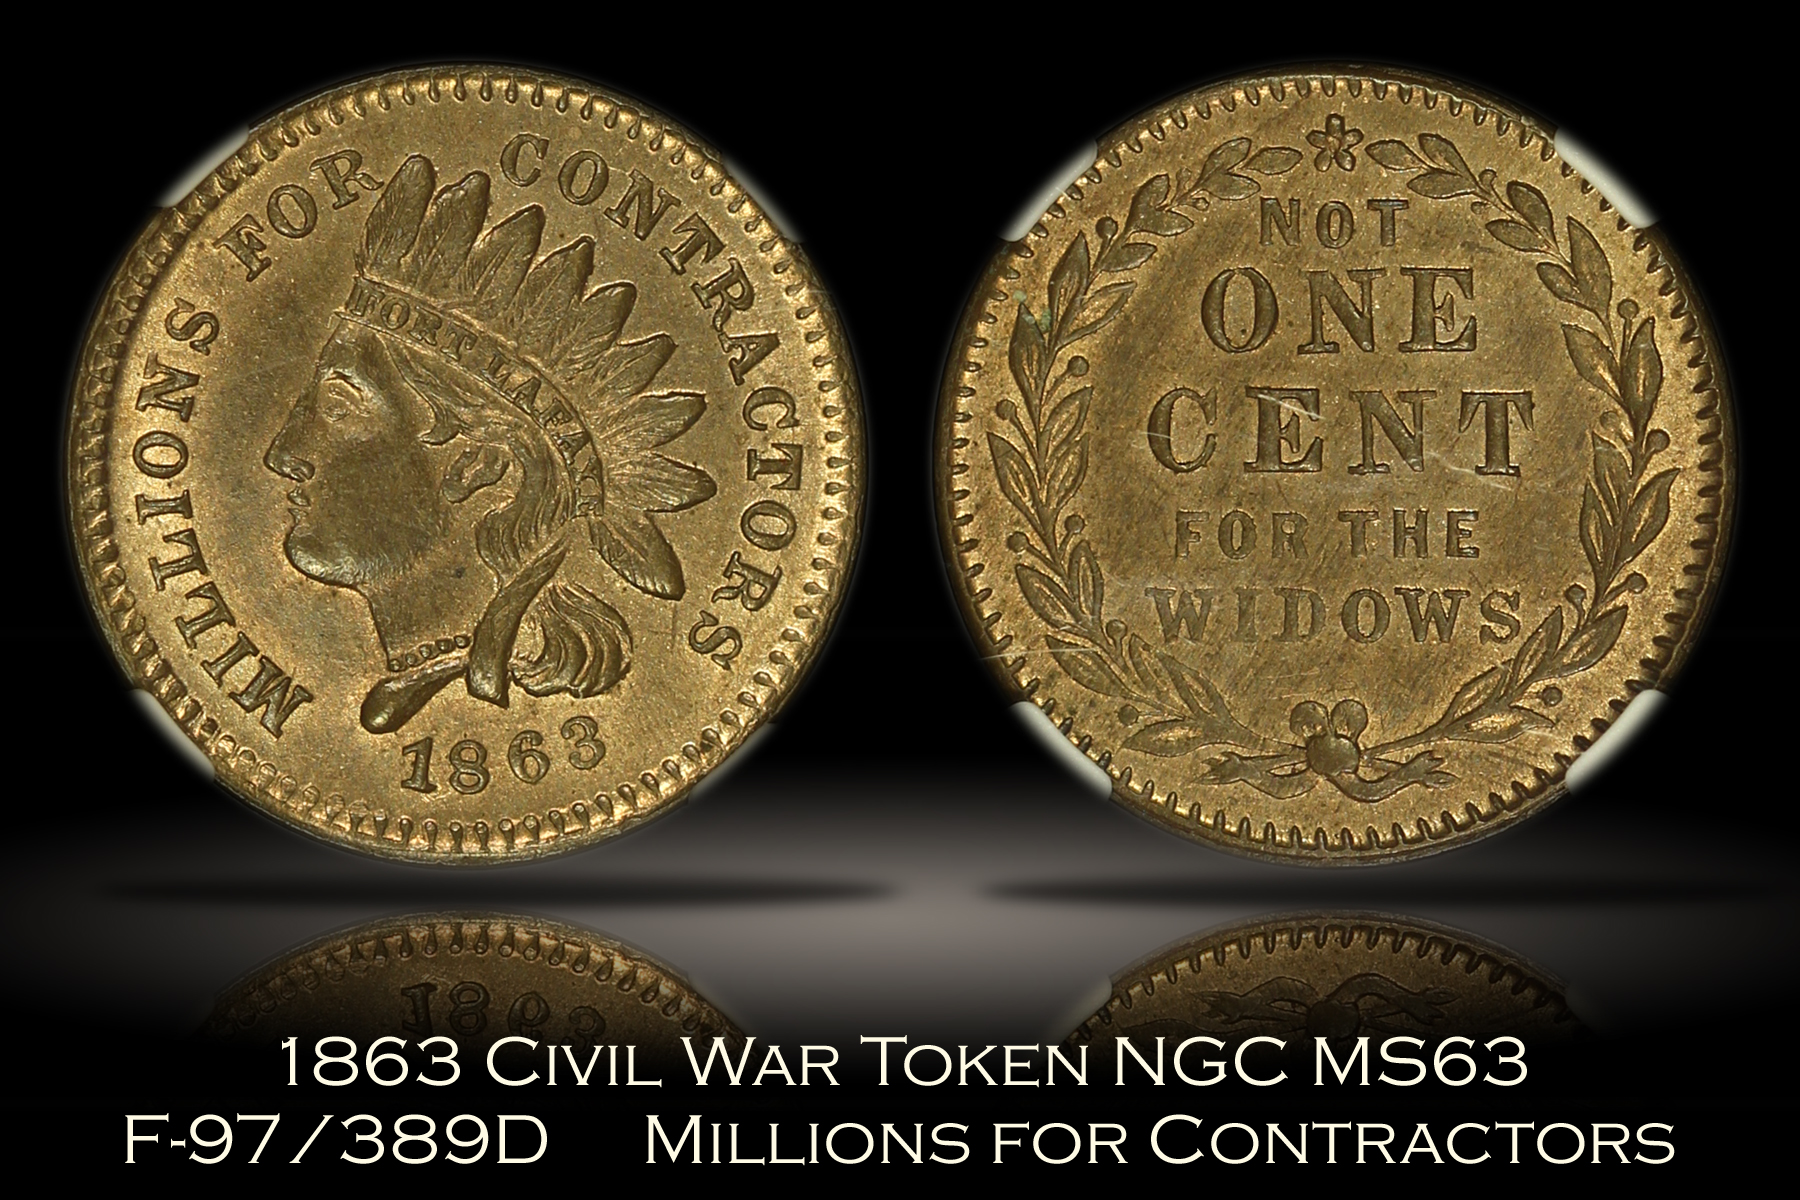 1863 Millions for Contractors Civil War Token F-97/389d NGC MS63